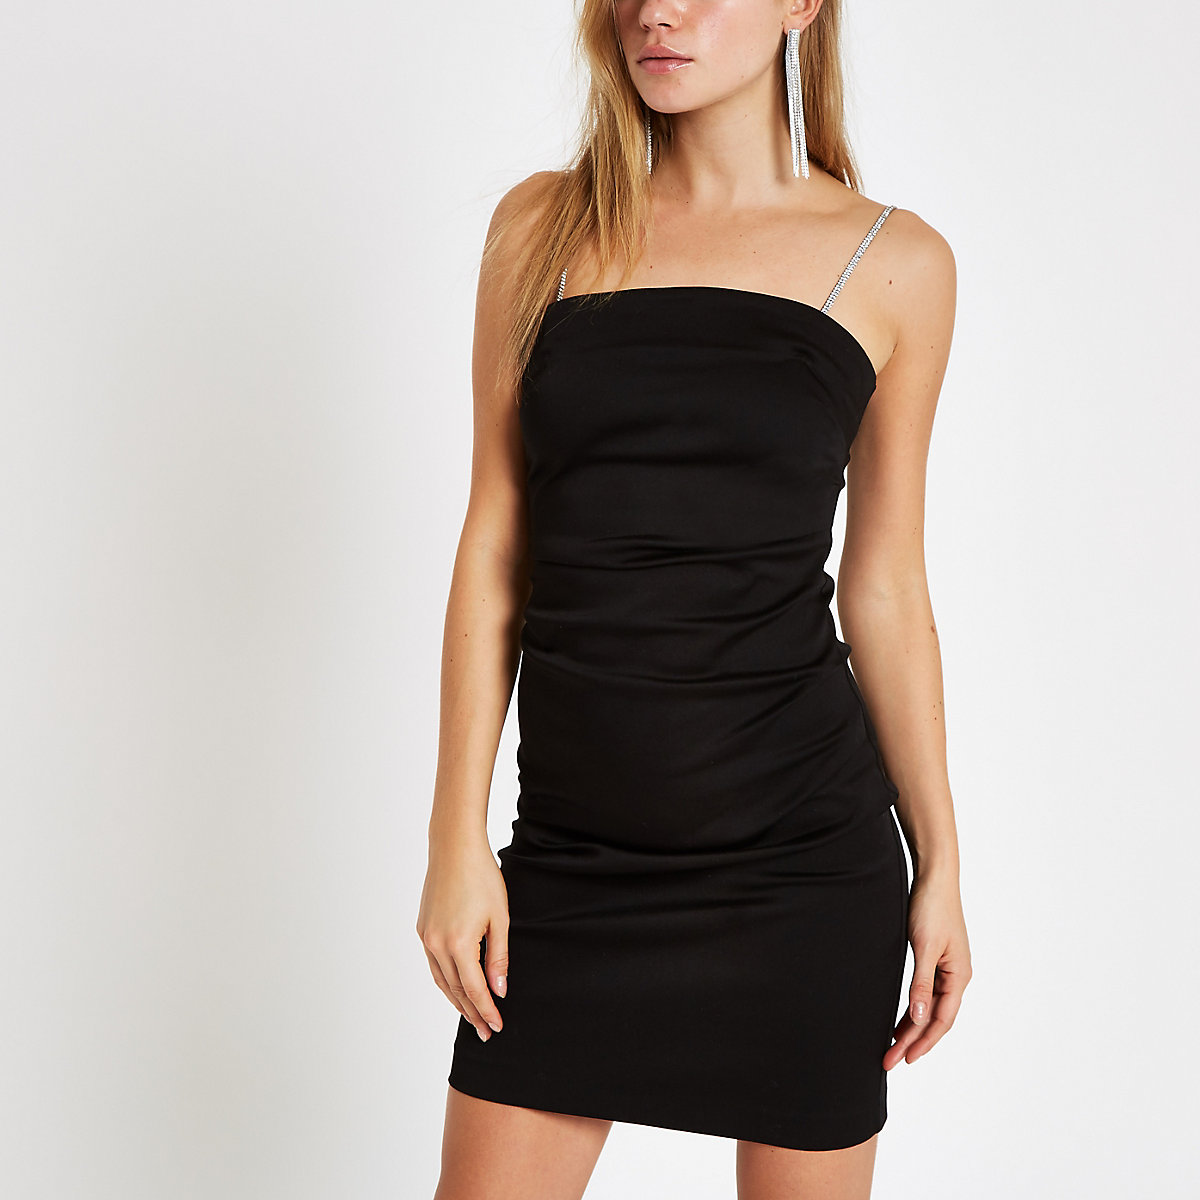 Black diamante strappy mini dress